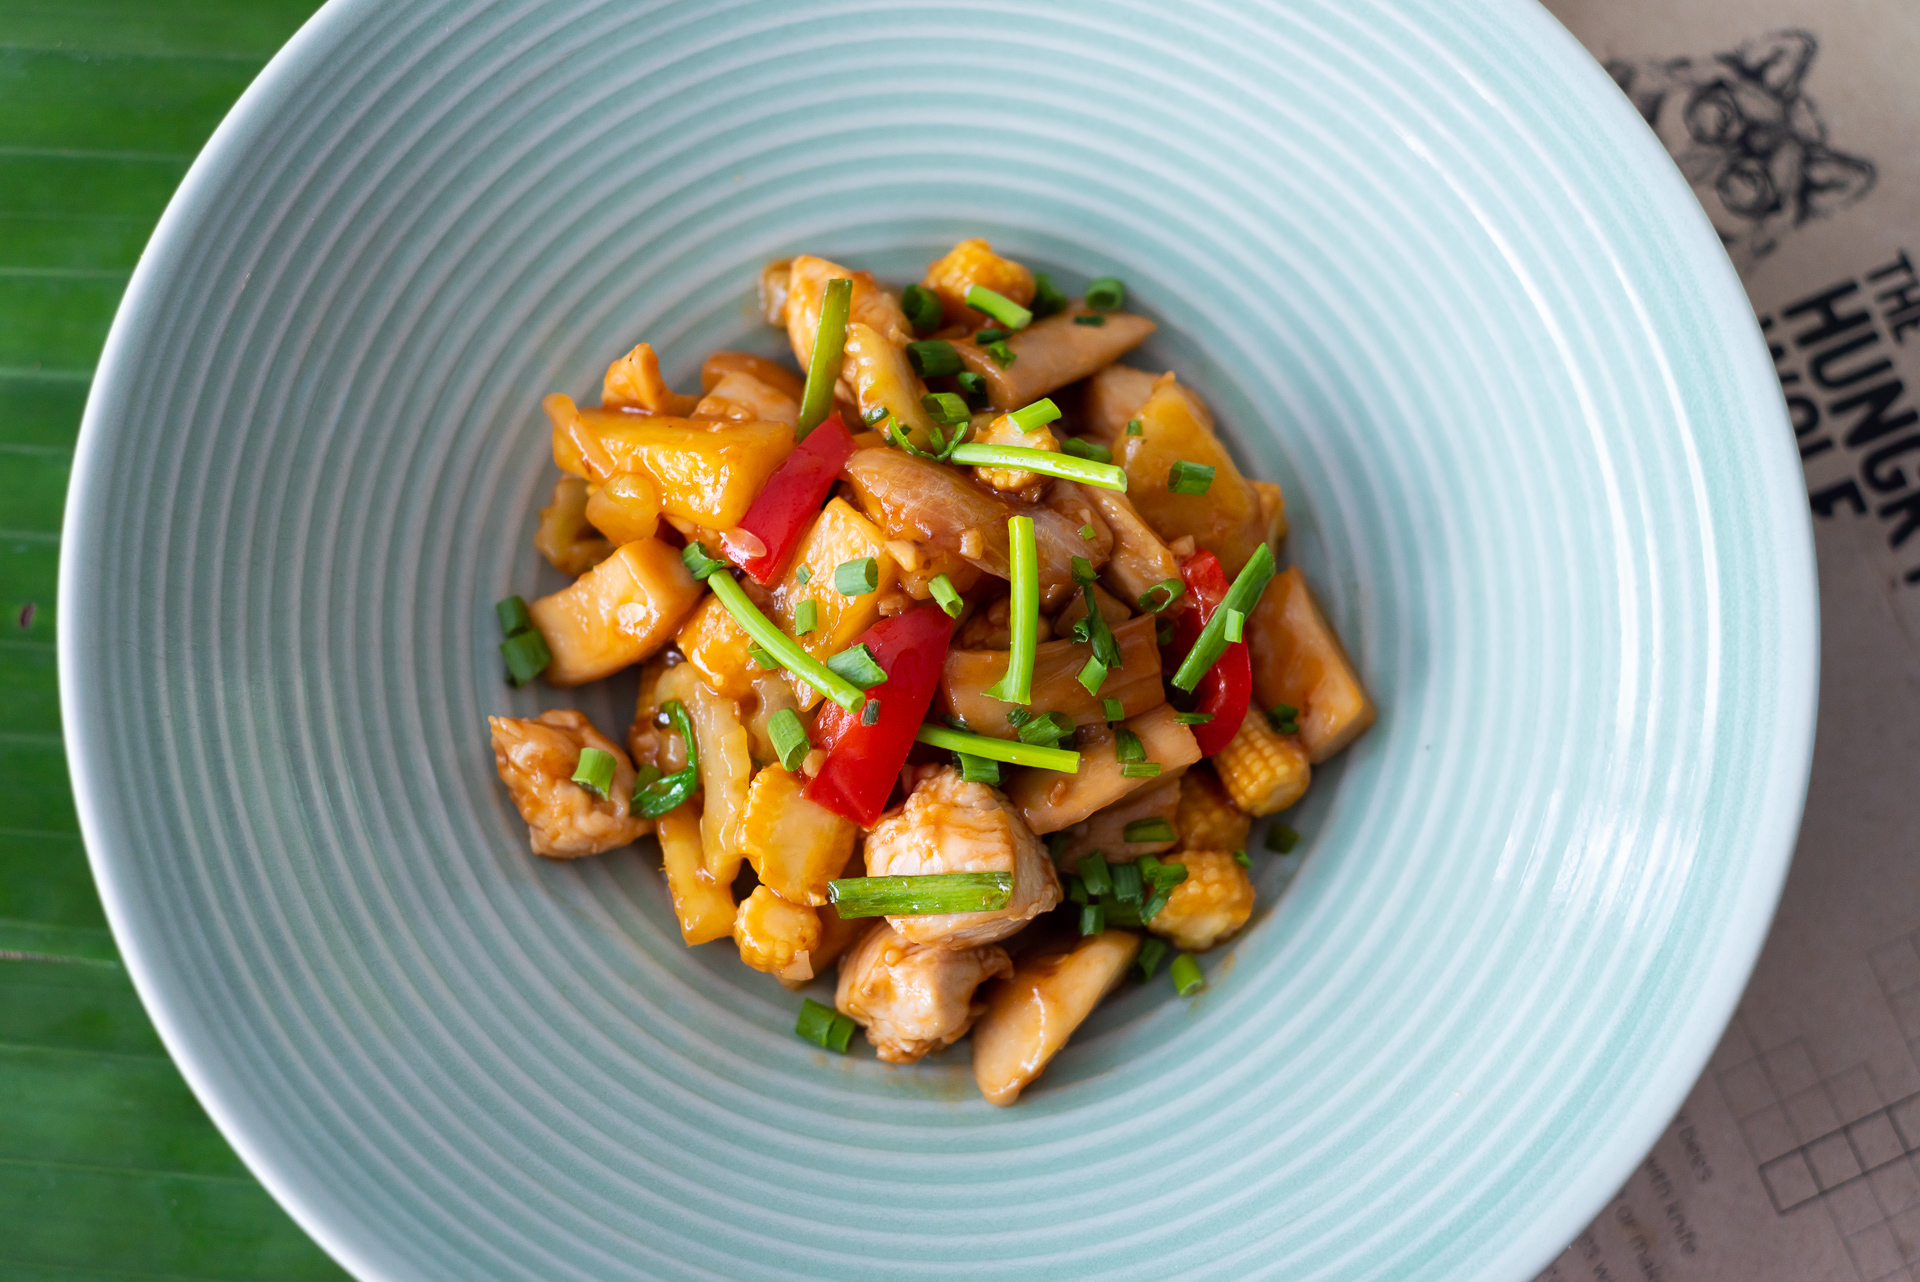 Sweet & sour vegetables with chicken